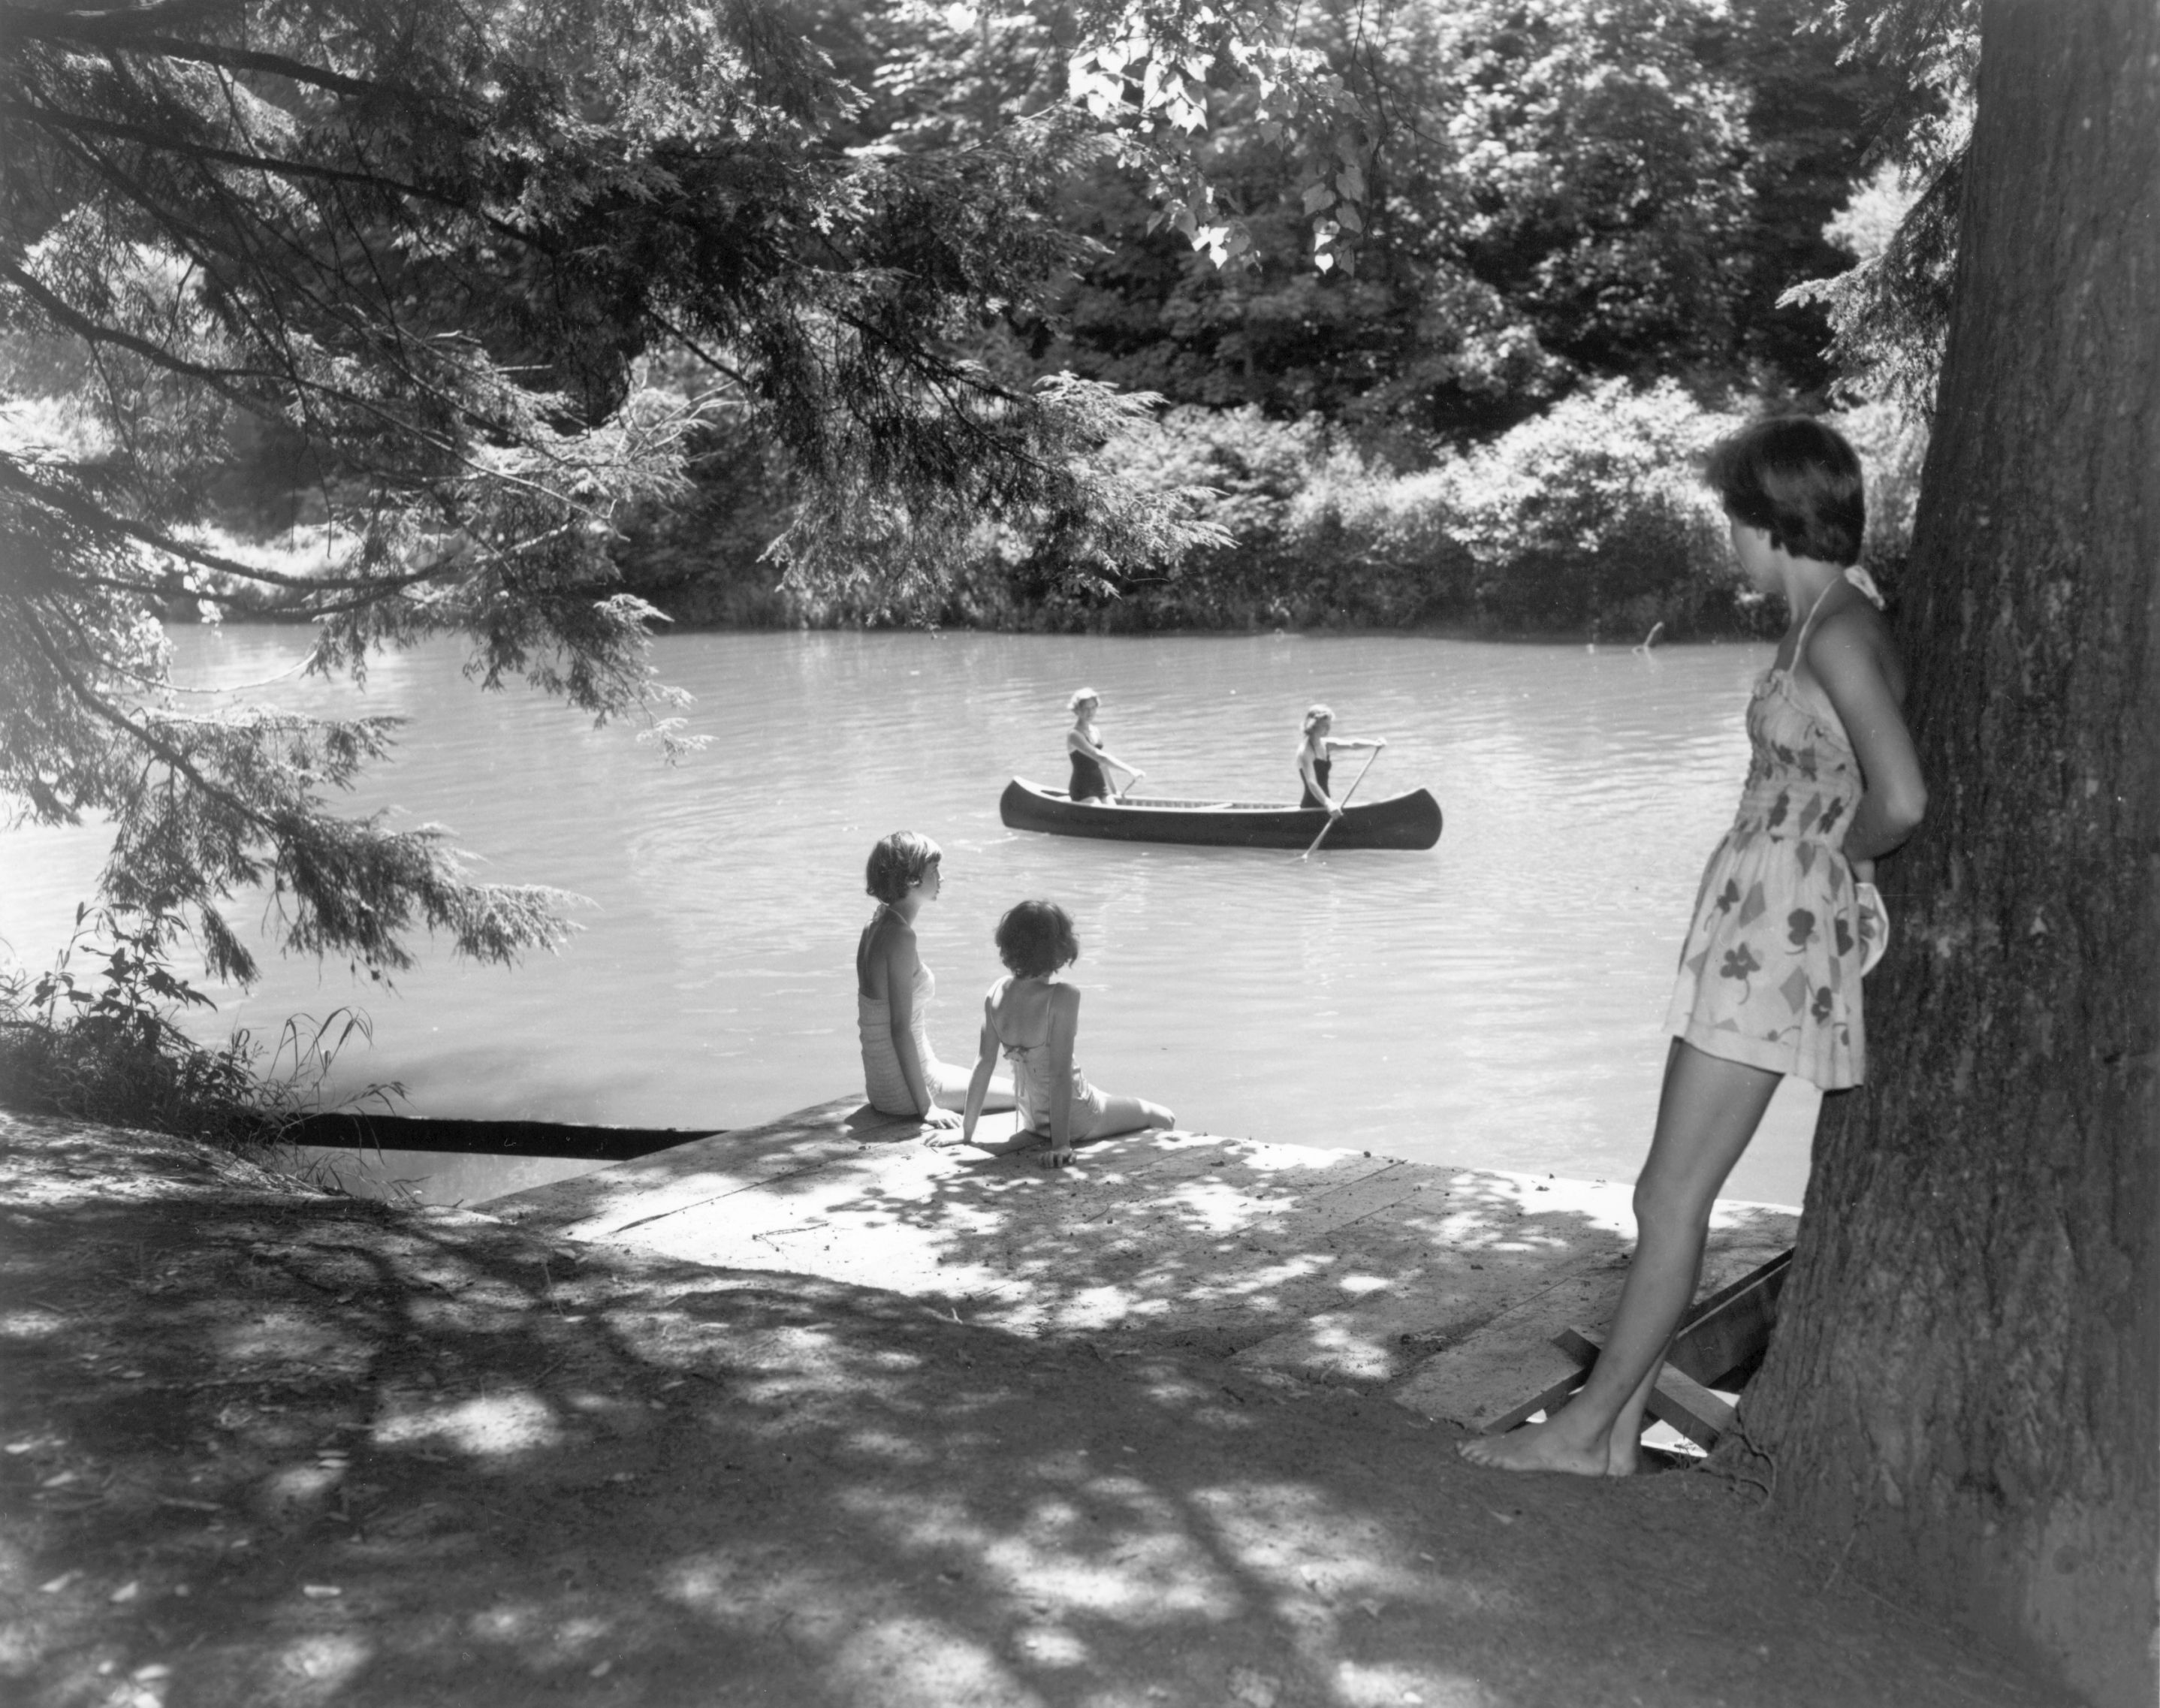 Camp Carysbrook Near Christiansburg 1950 Vcc 013543 000 Virginia State Chamber Of Commerce Photograph Collection P Vintage Cabin Old Photos Vacation Images